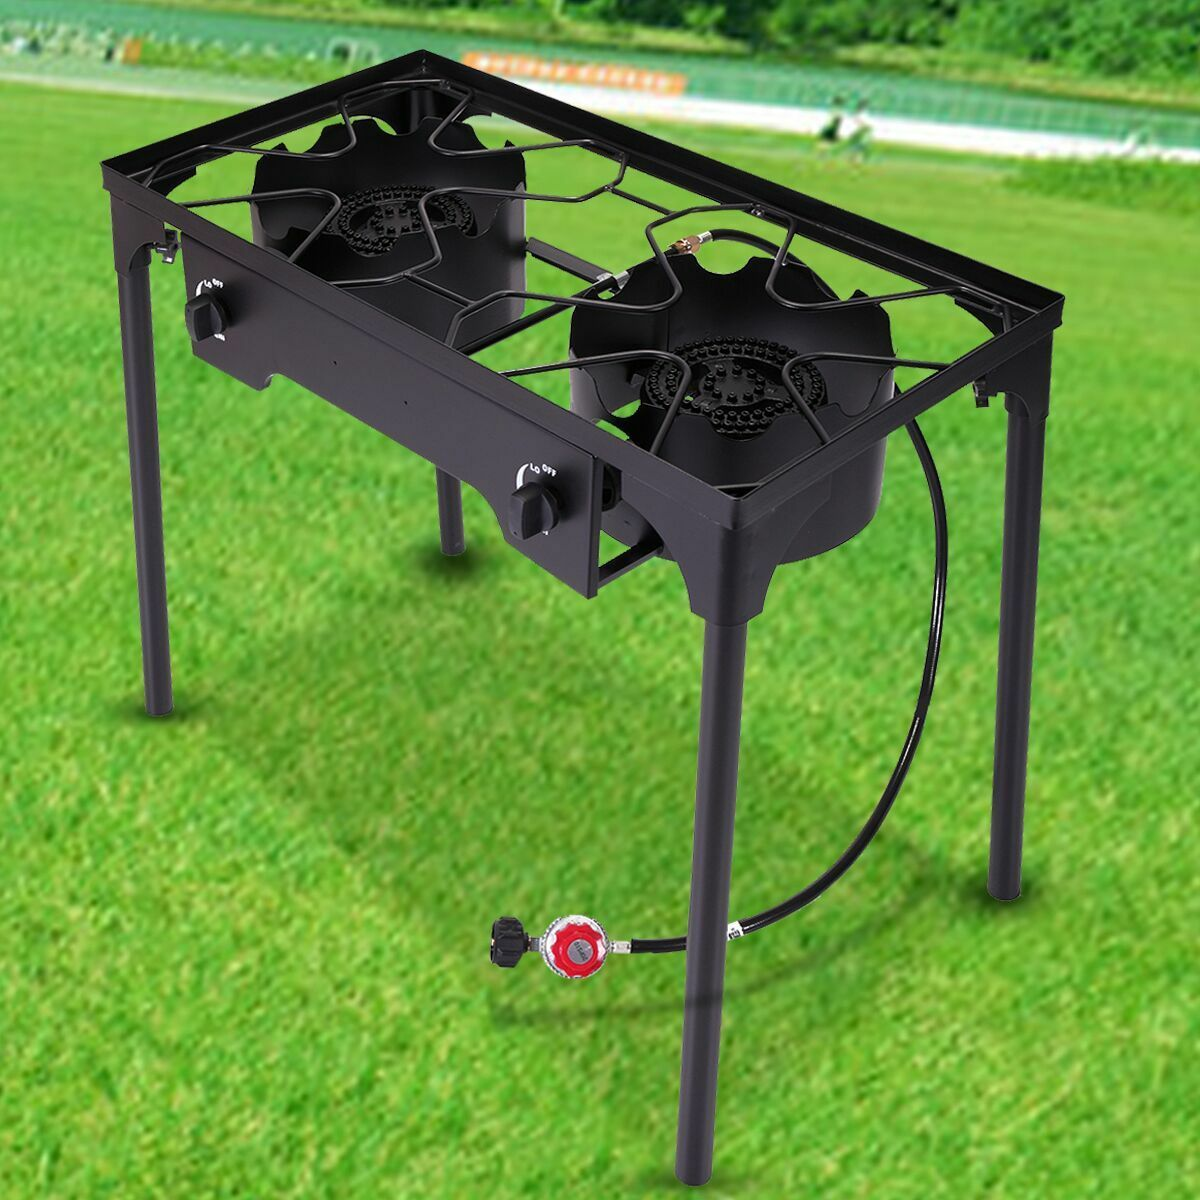 BBQ Stove Stand Double Burner Gas Propane Cooker Outdoor Camping Picnic Barbecue